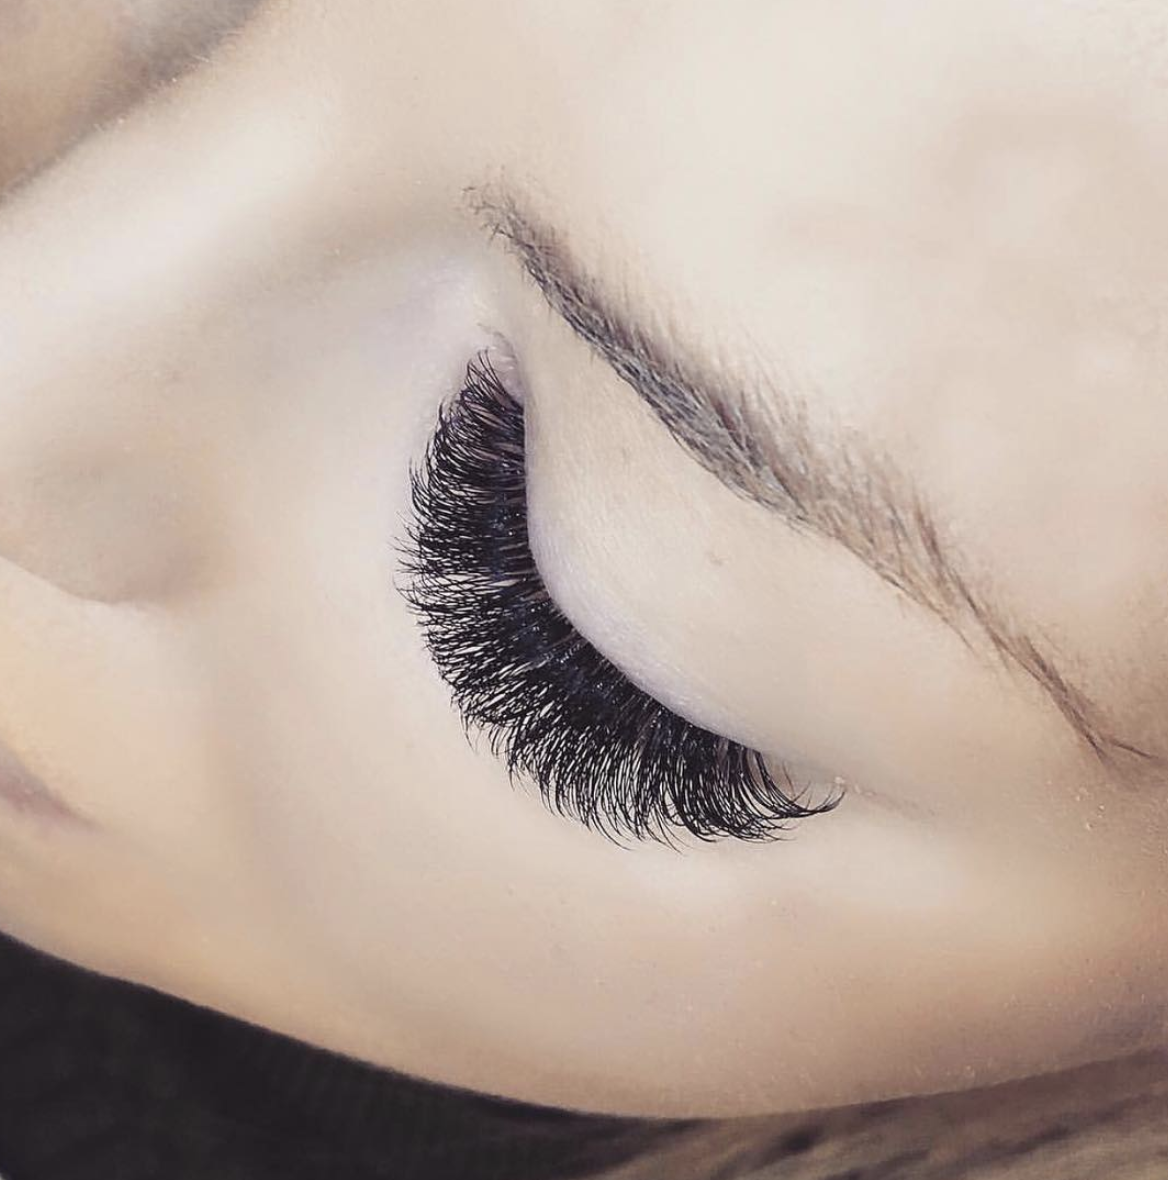 8581faa64c1 New Amazing Volume lashes are multiple strands of lightweight lash  extensions, bound together at the base and placed on each of your own  natural lashes to ...